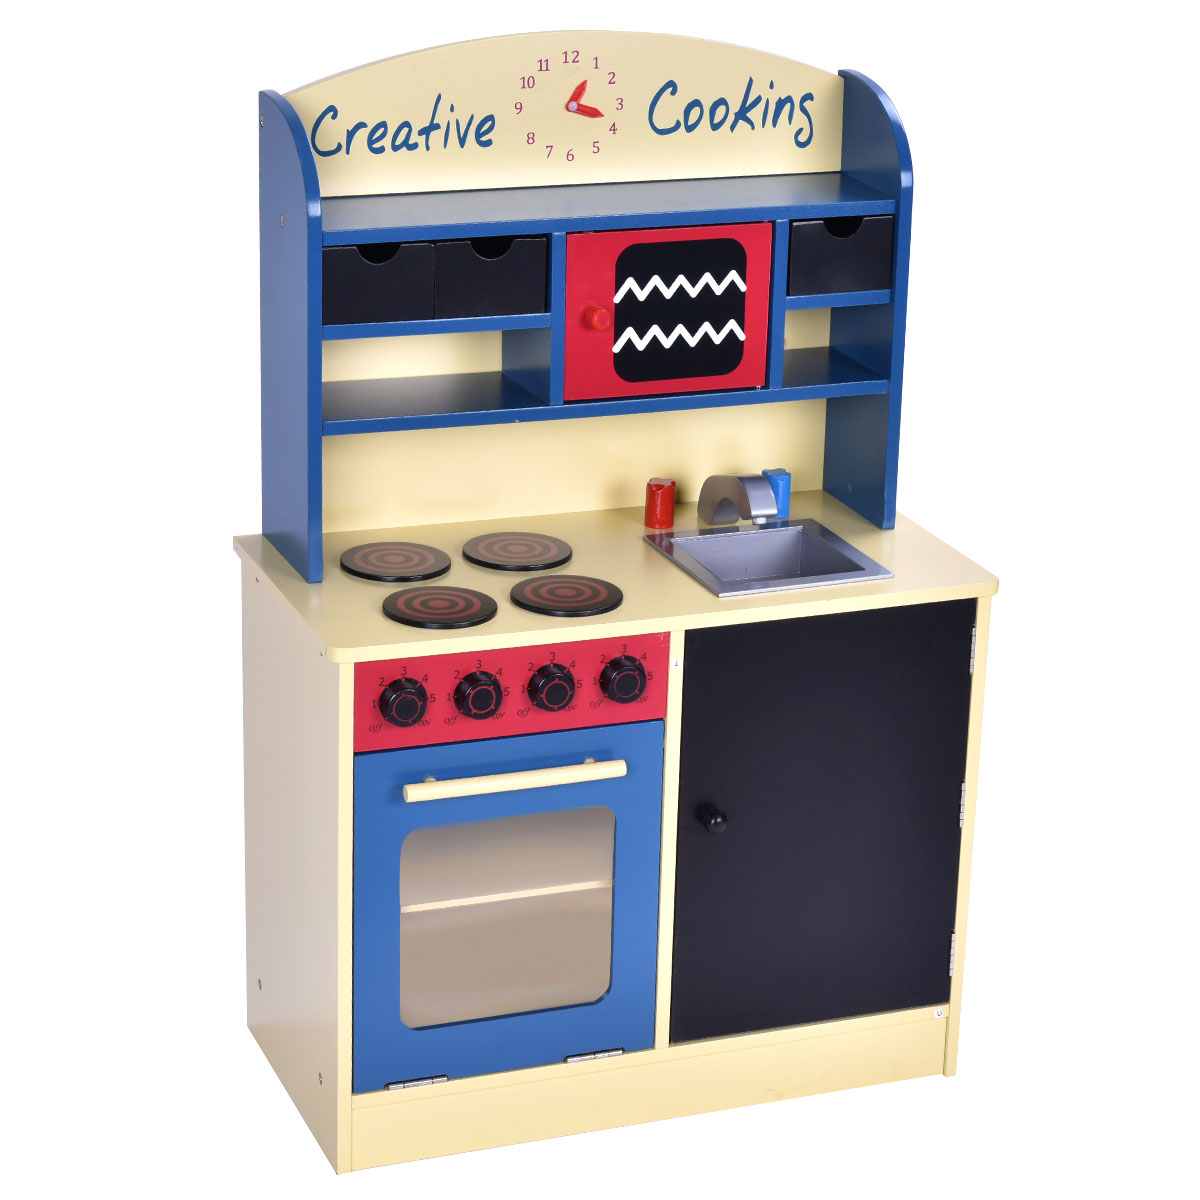 Costway Wood Kitchen Toy Kids Cooking Pretend Play Set Toddler Wooden Playset Gift Newl